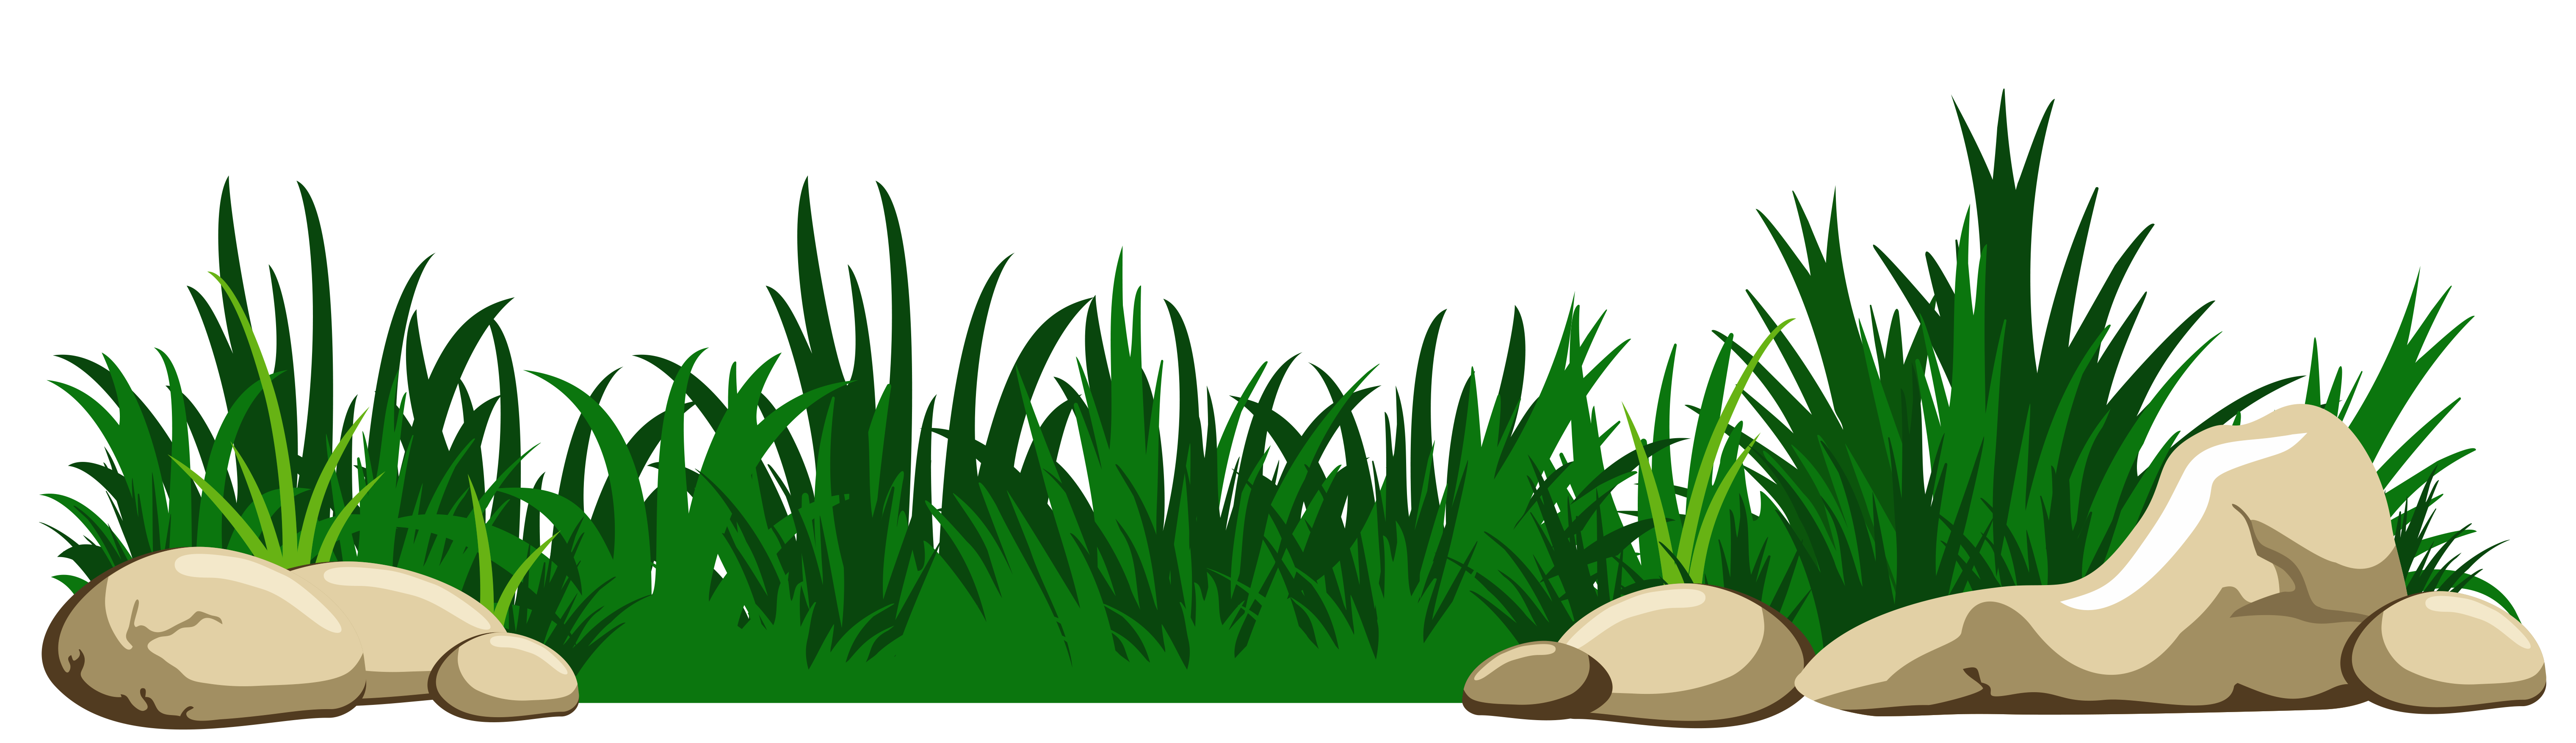 Grass with rocks png. Clipart rock transparent background